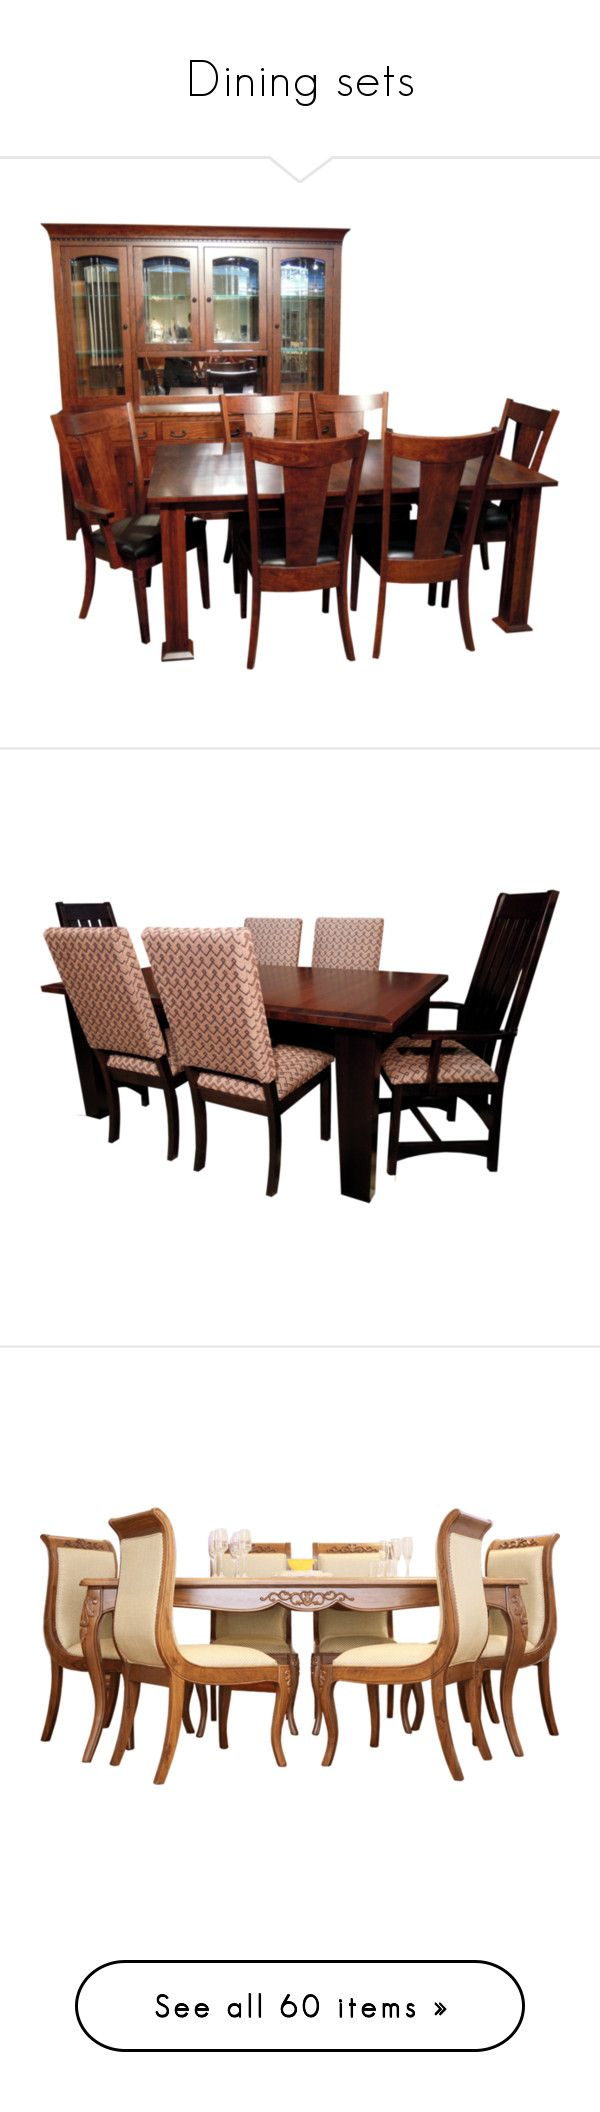 """Dining sets"" by colonae ❤ liked on Polyvore featuring dining, diningsets, DiningTables, home, furniture, shaker dining set, shaker furniture, shaker style furniture, glass table and chairs and glass furniture"